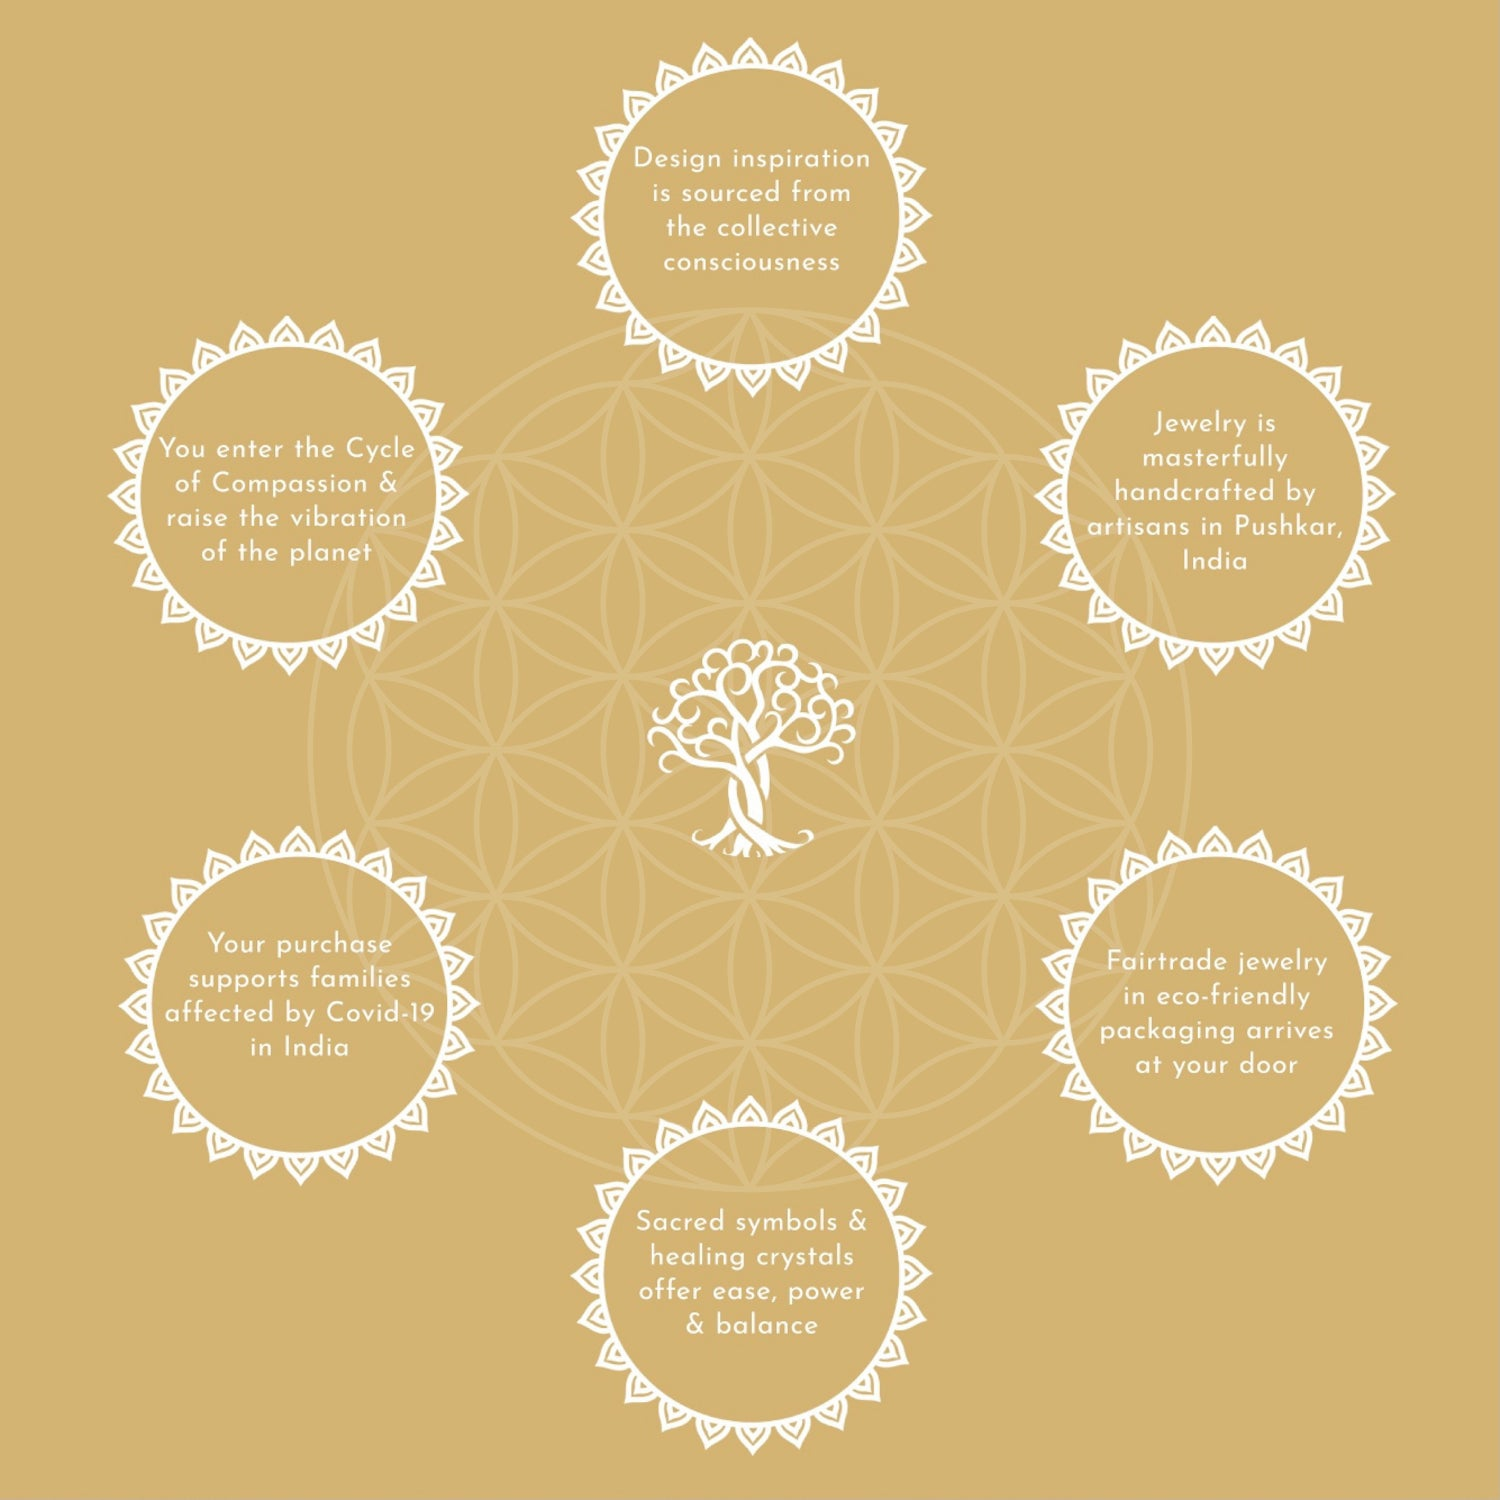 Daya Cycle of Compassion